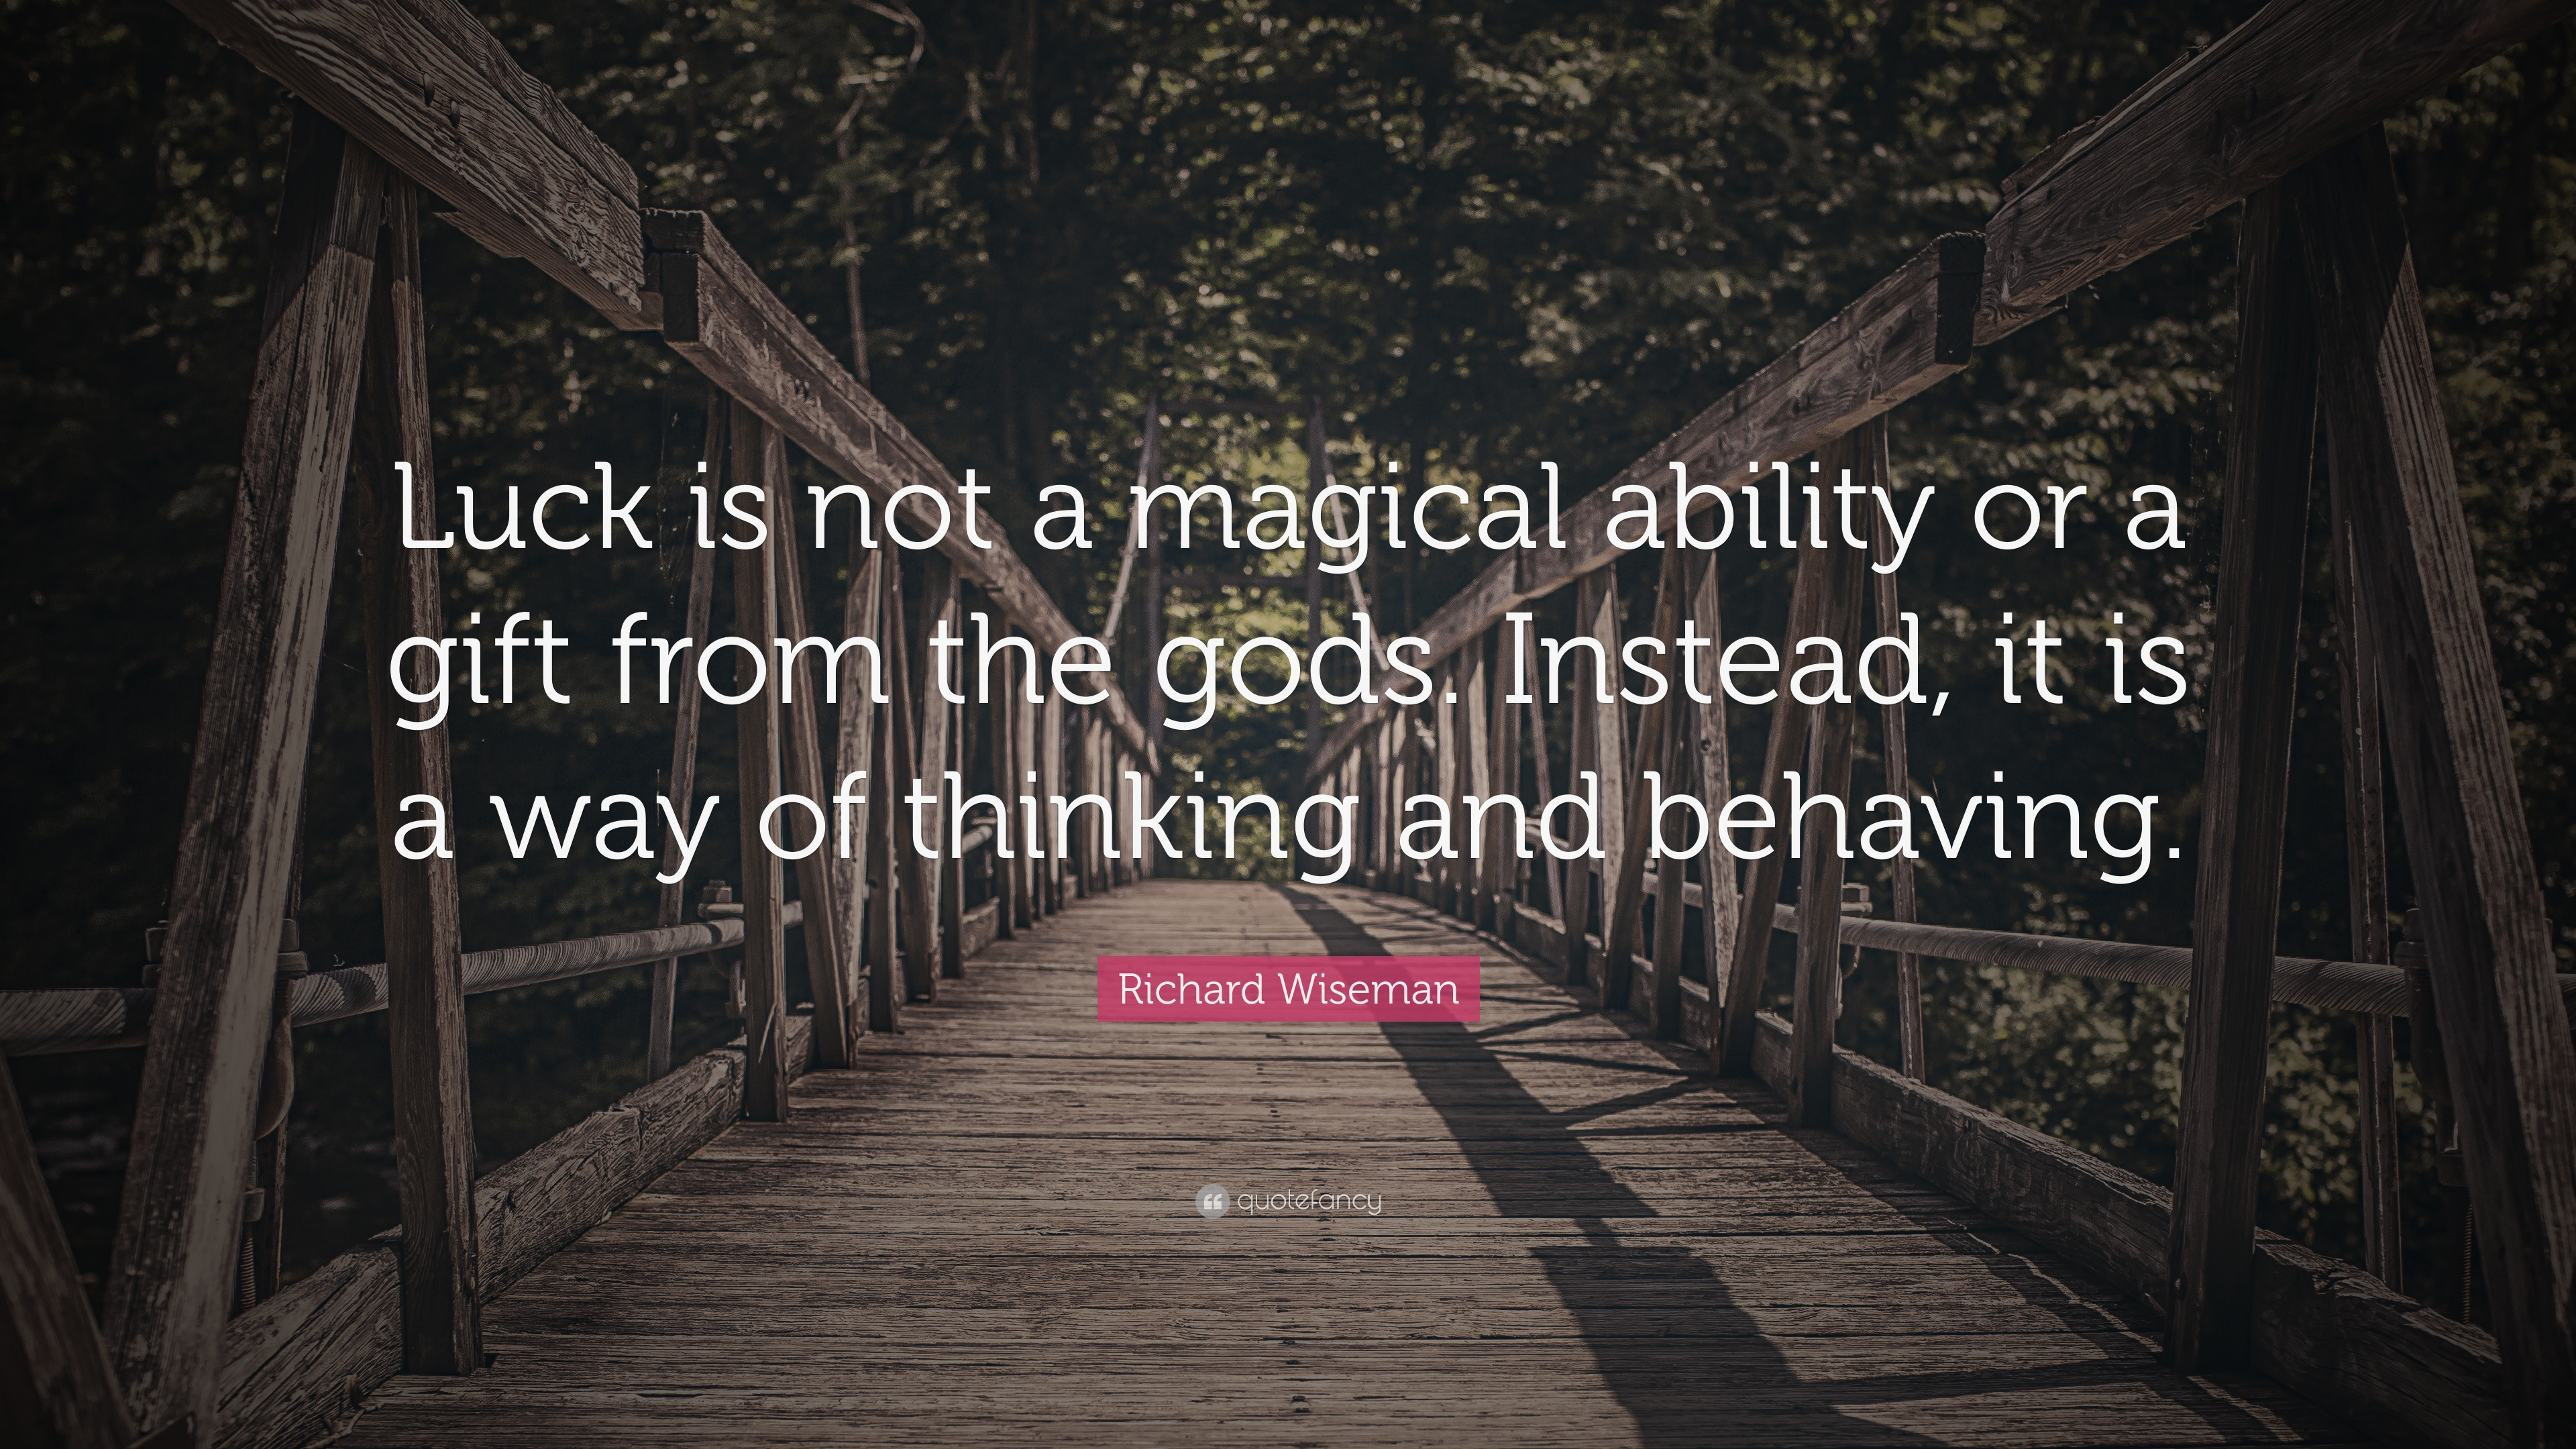 Richard Wiseman Quote Luck Is Not A Magical Ability Or A Gift From